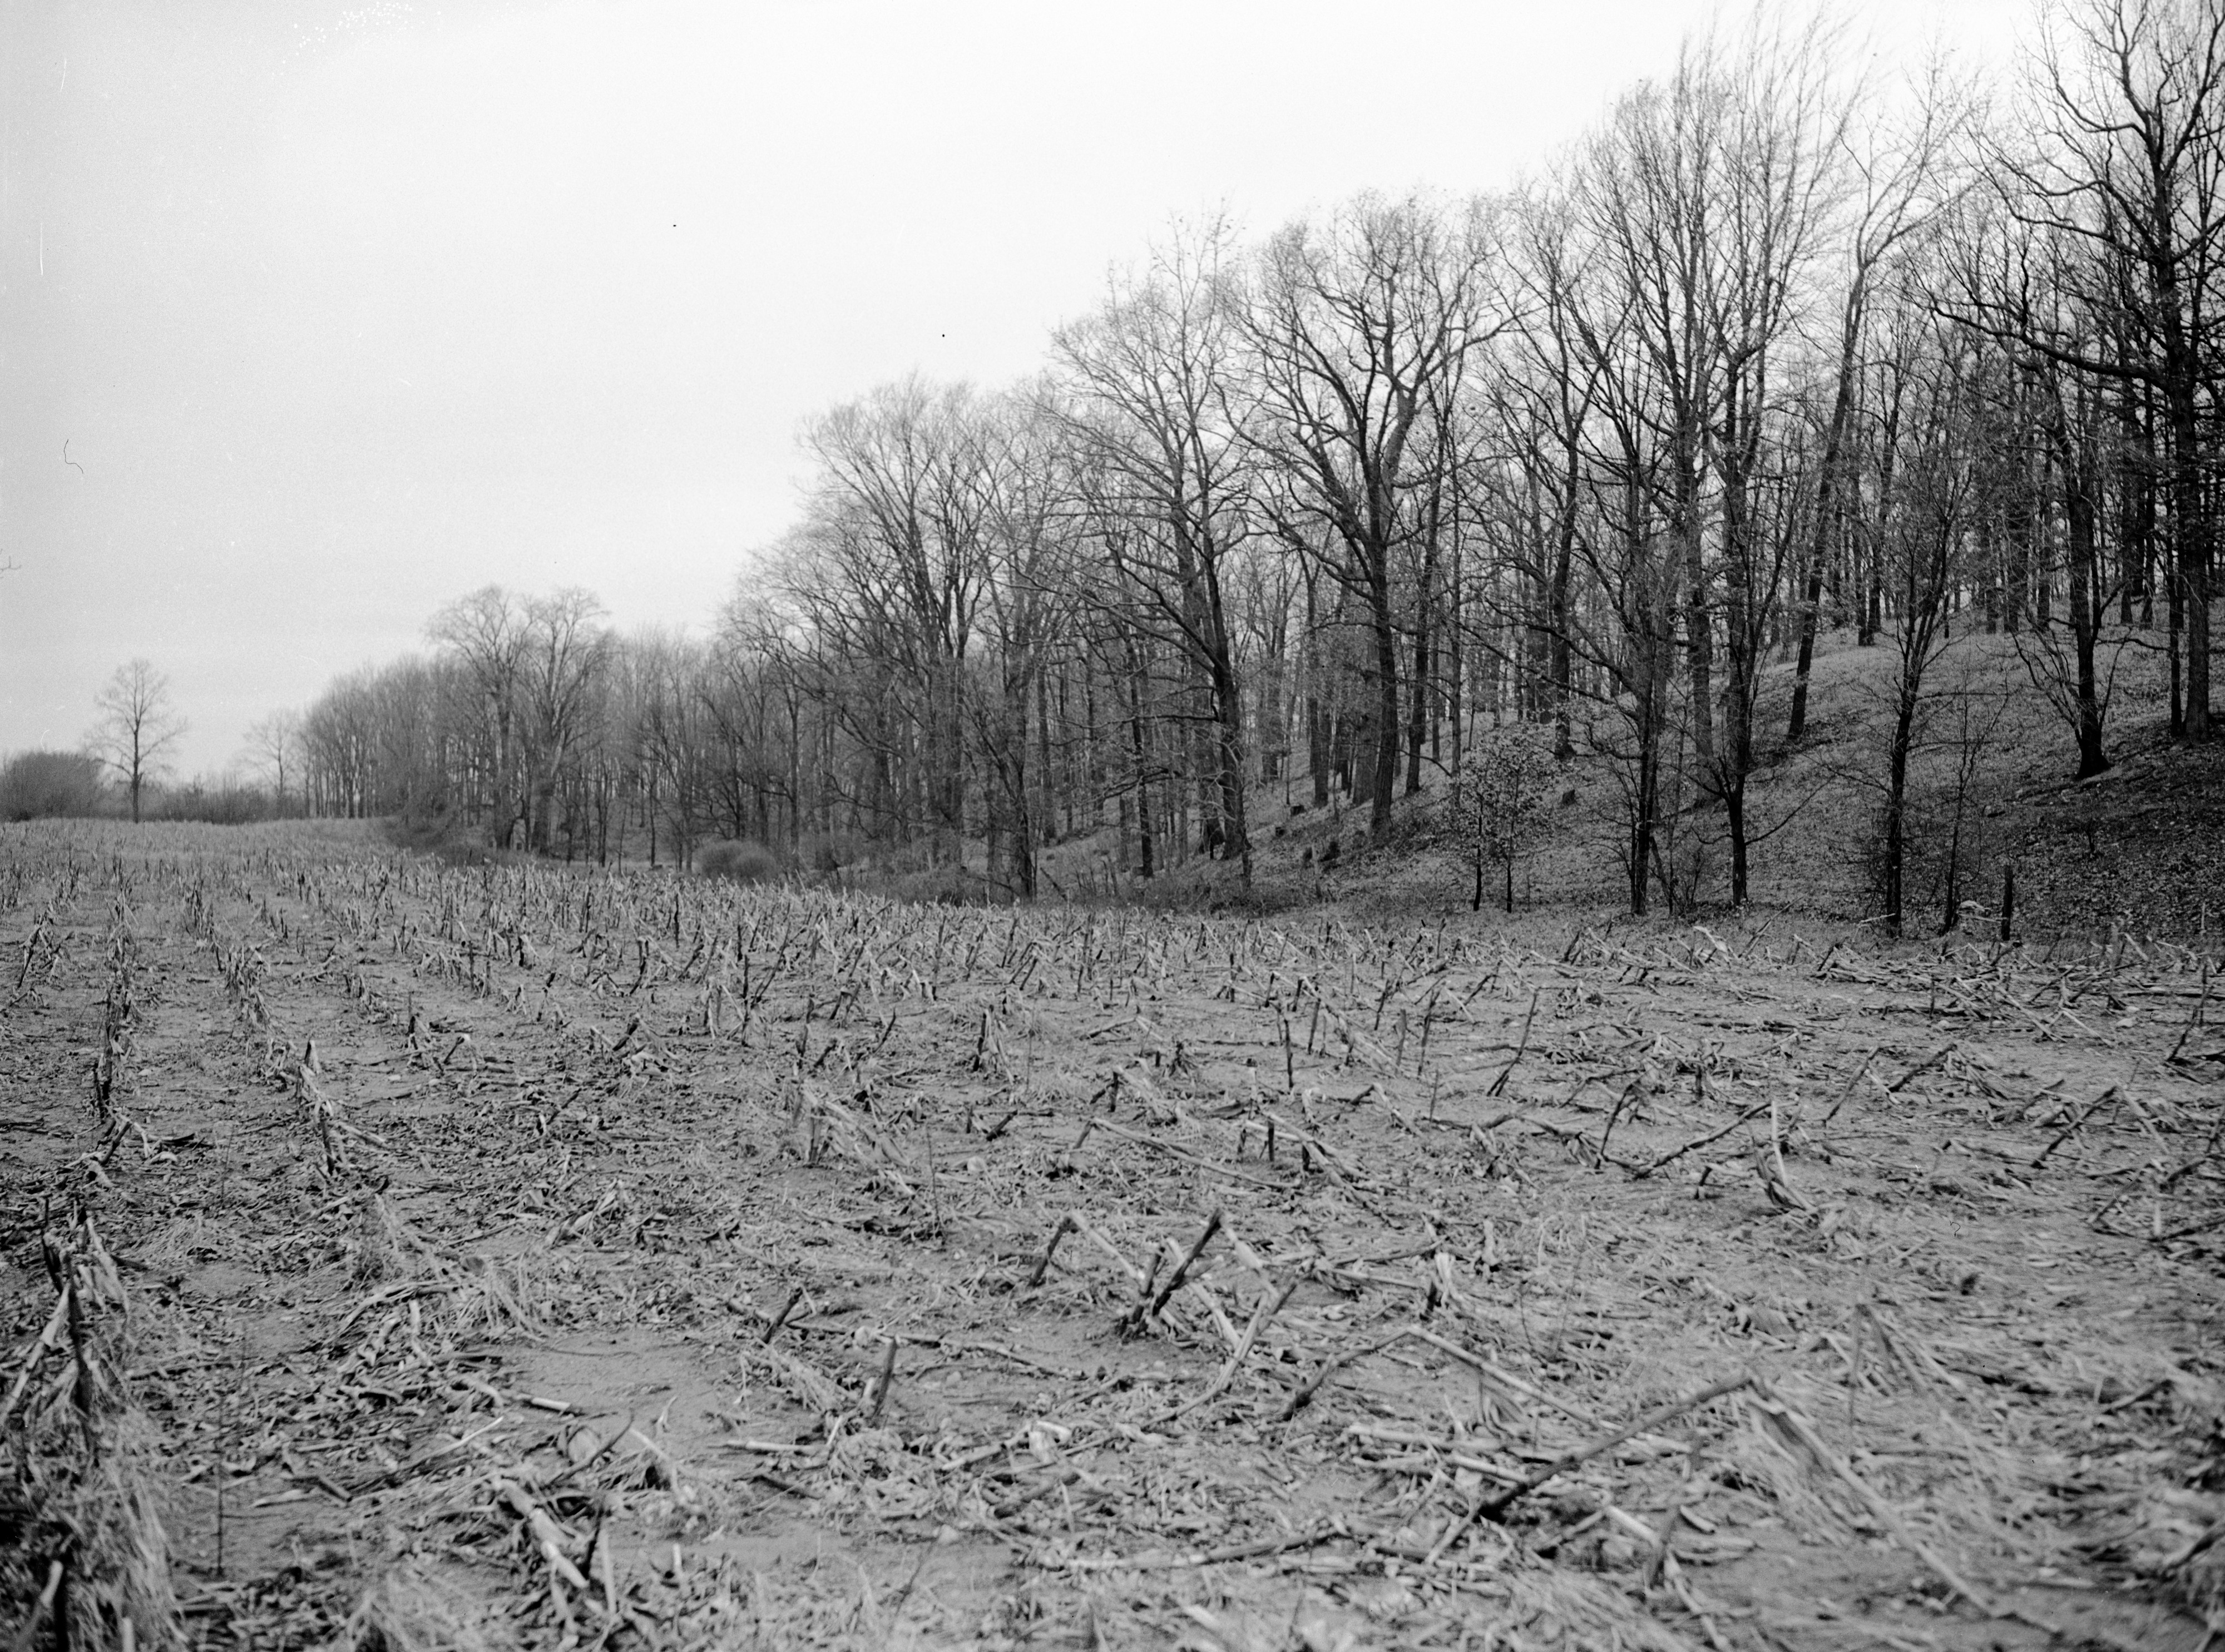 Oscar Buss Farm Where Burned Body of Orville Wurster Was Found, March 1942 image